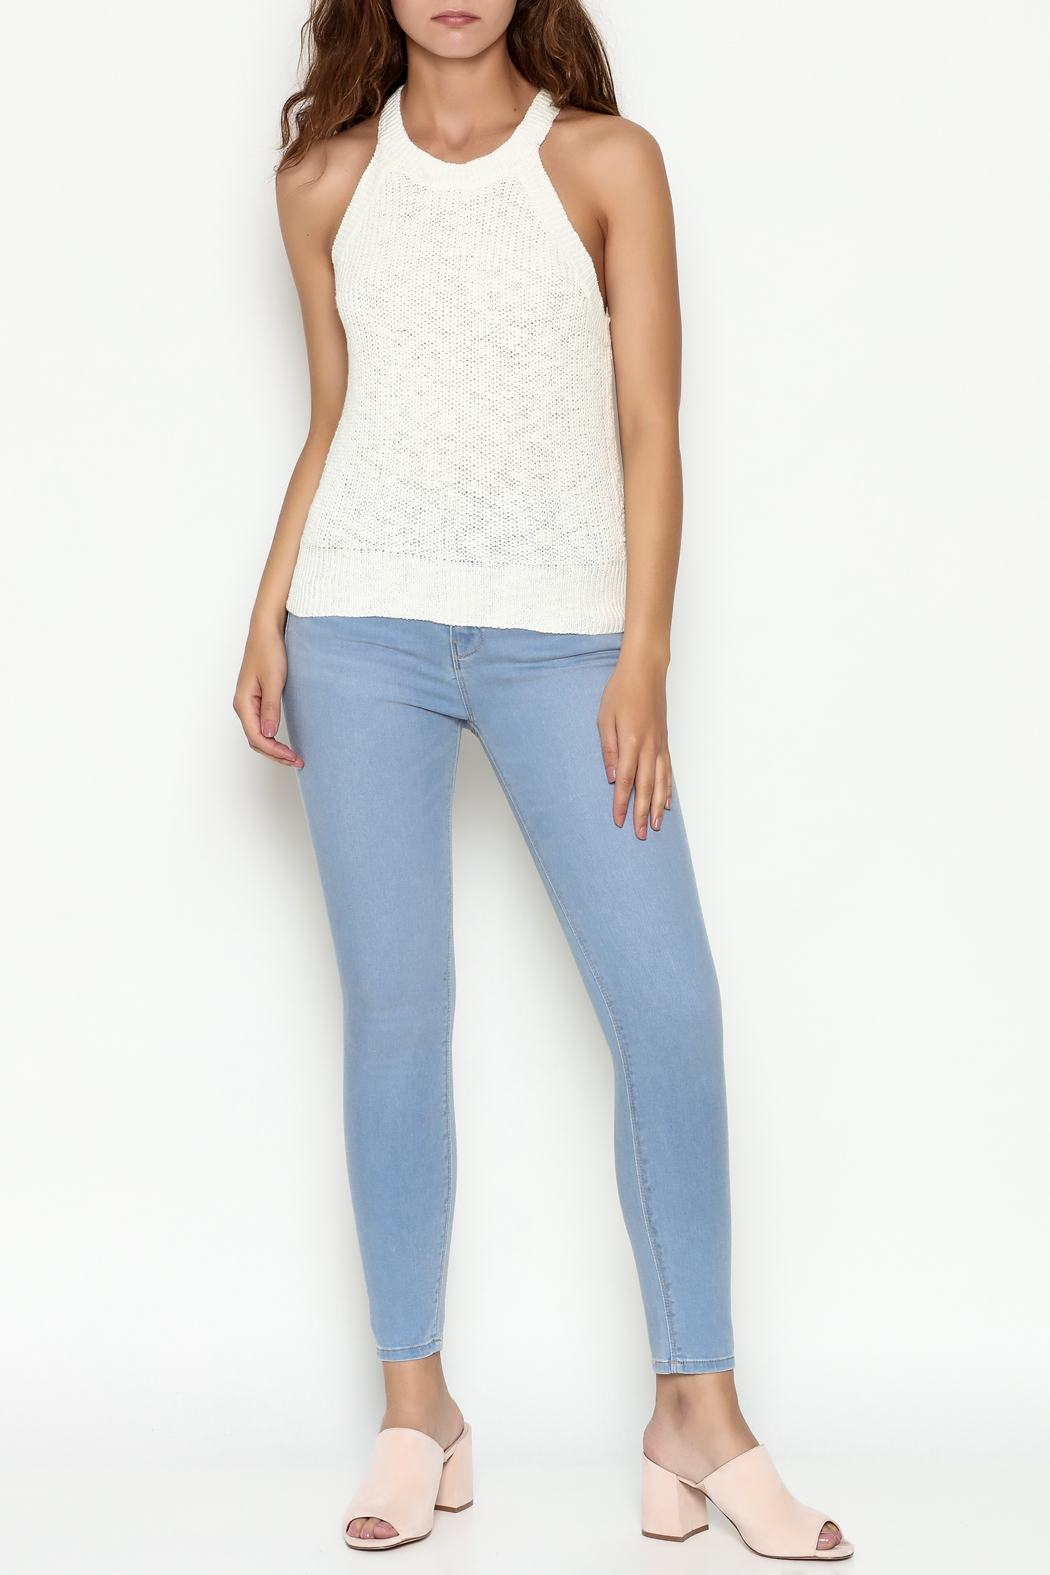 Olive & Oak Cropped White Sweater Tank - Side Cropped Image